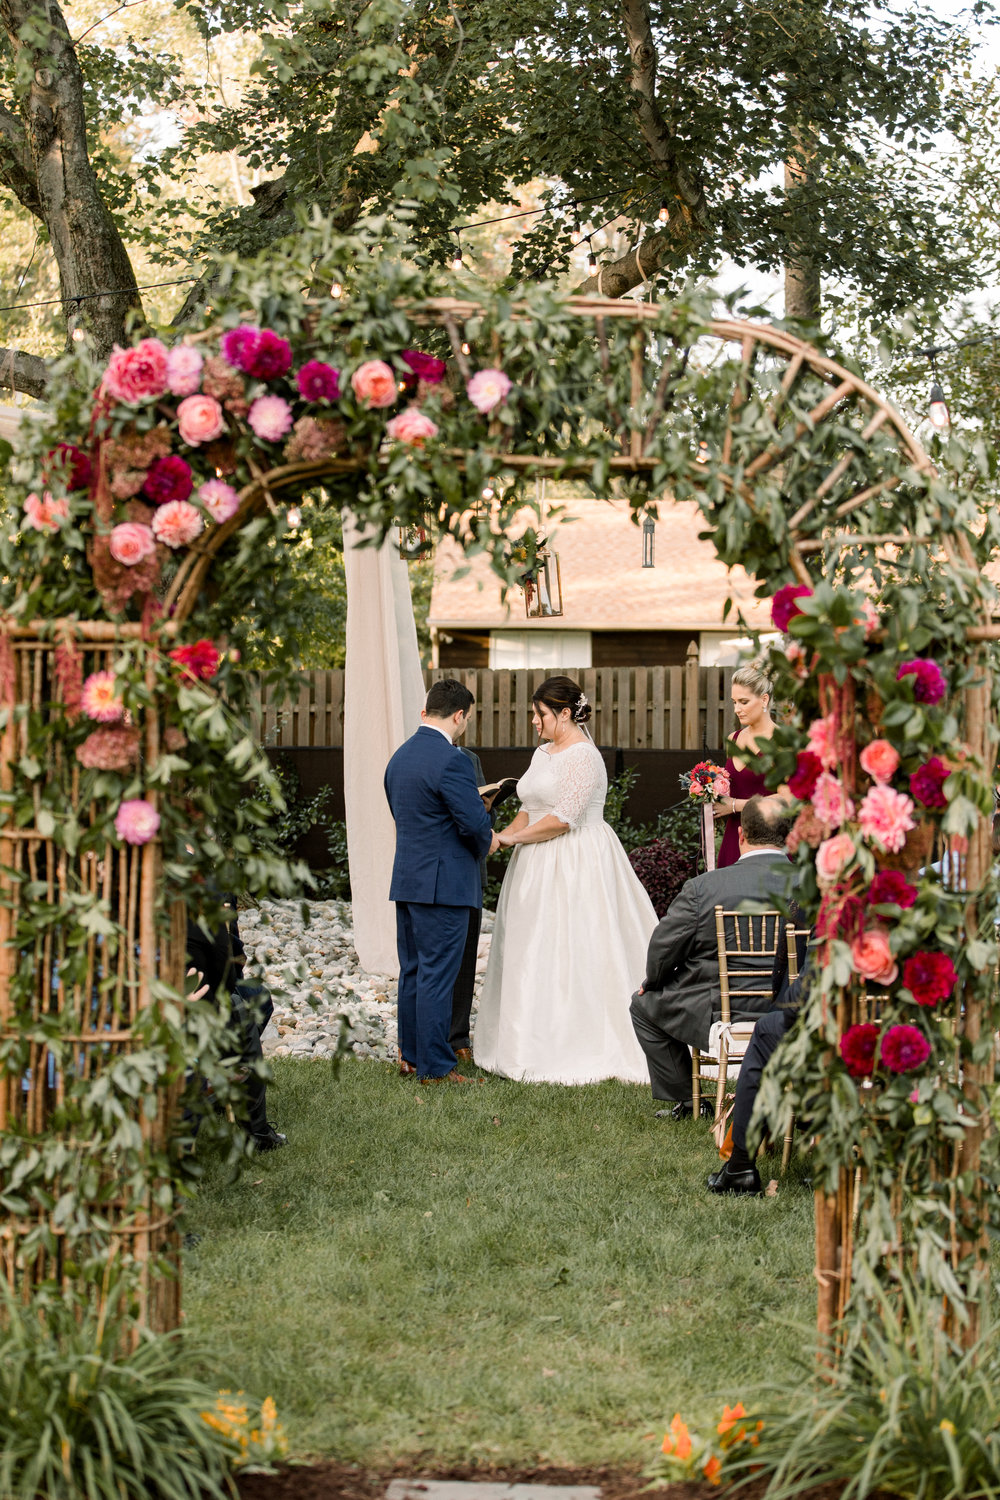 NJ Wedding, Private Residence, Pink Flowers, Ceremony Arch, Aisle Decor, Samantha Jay Photography